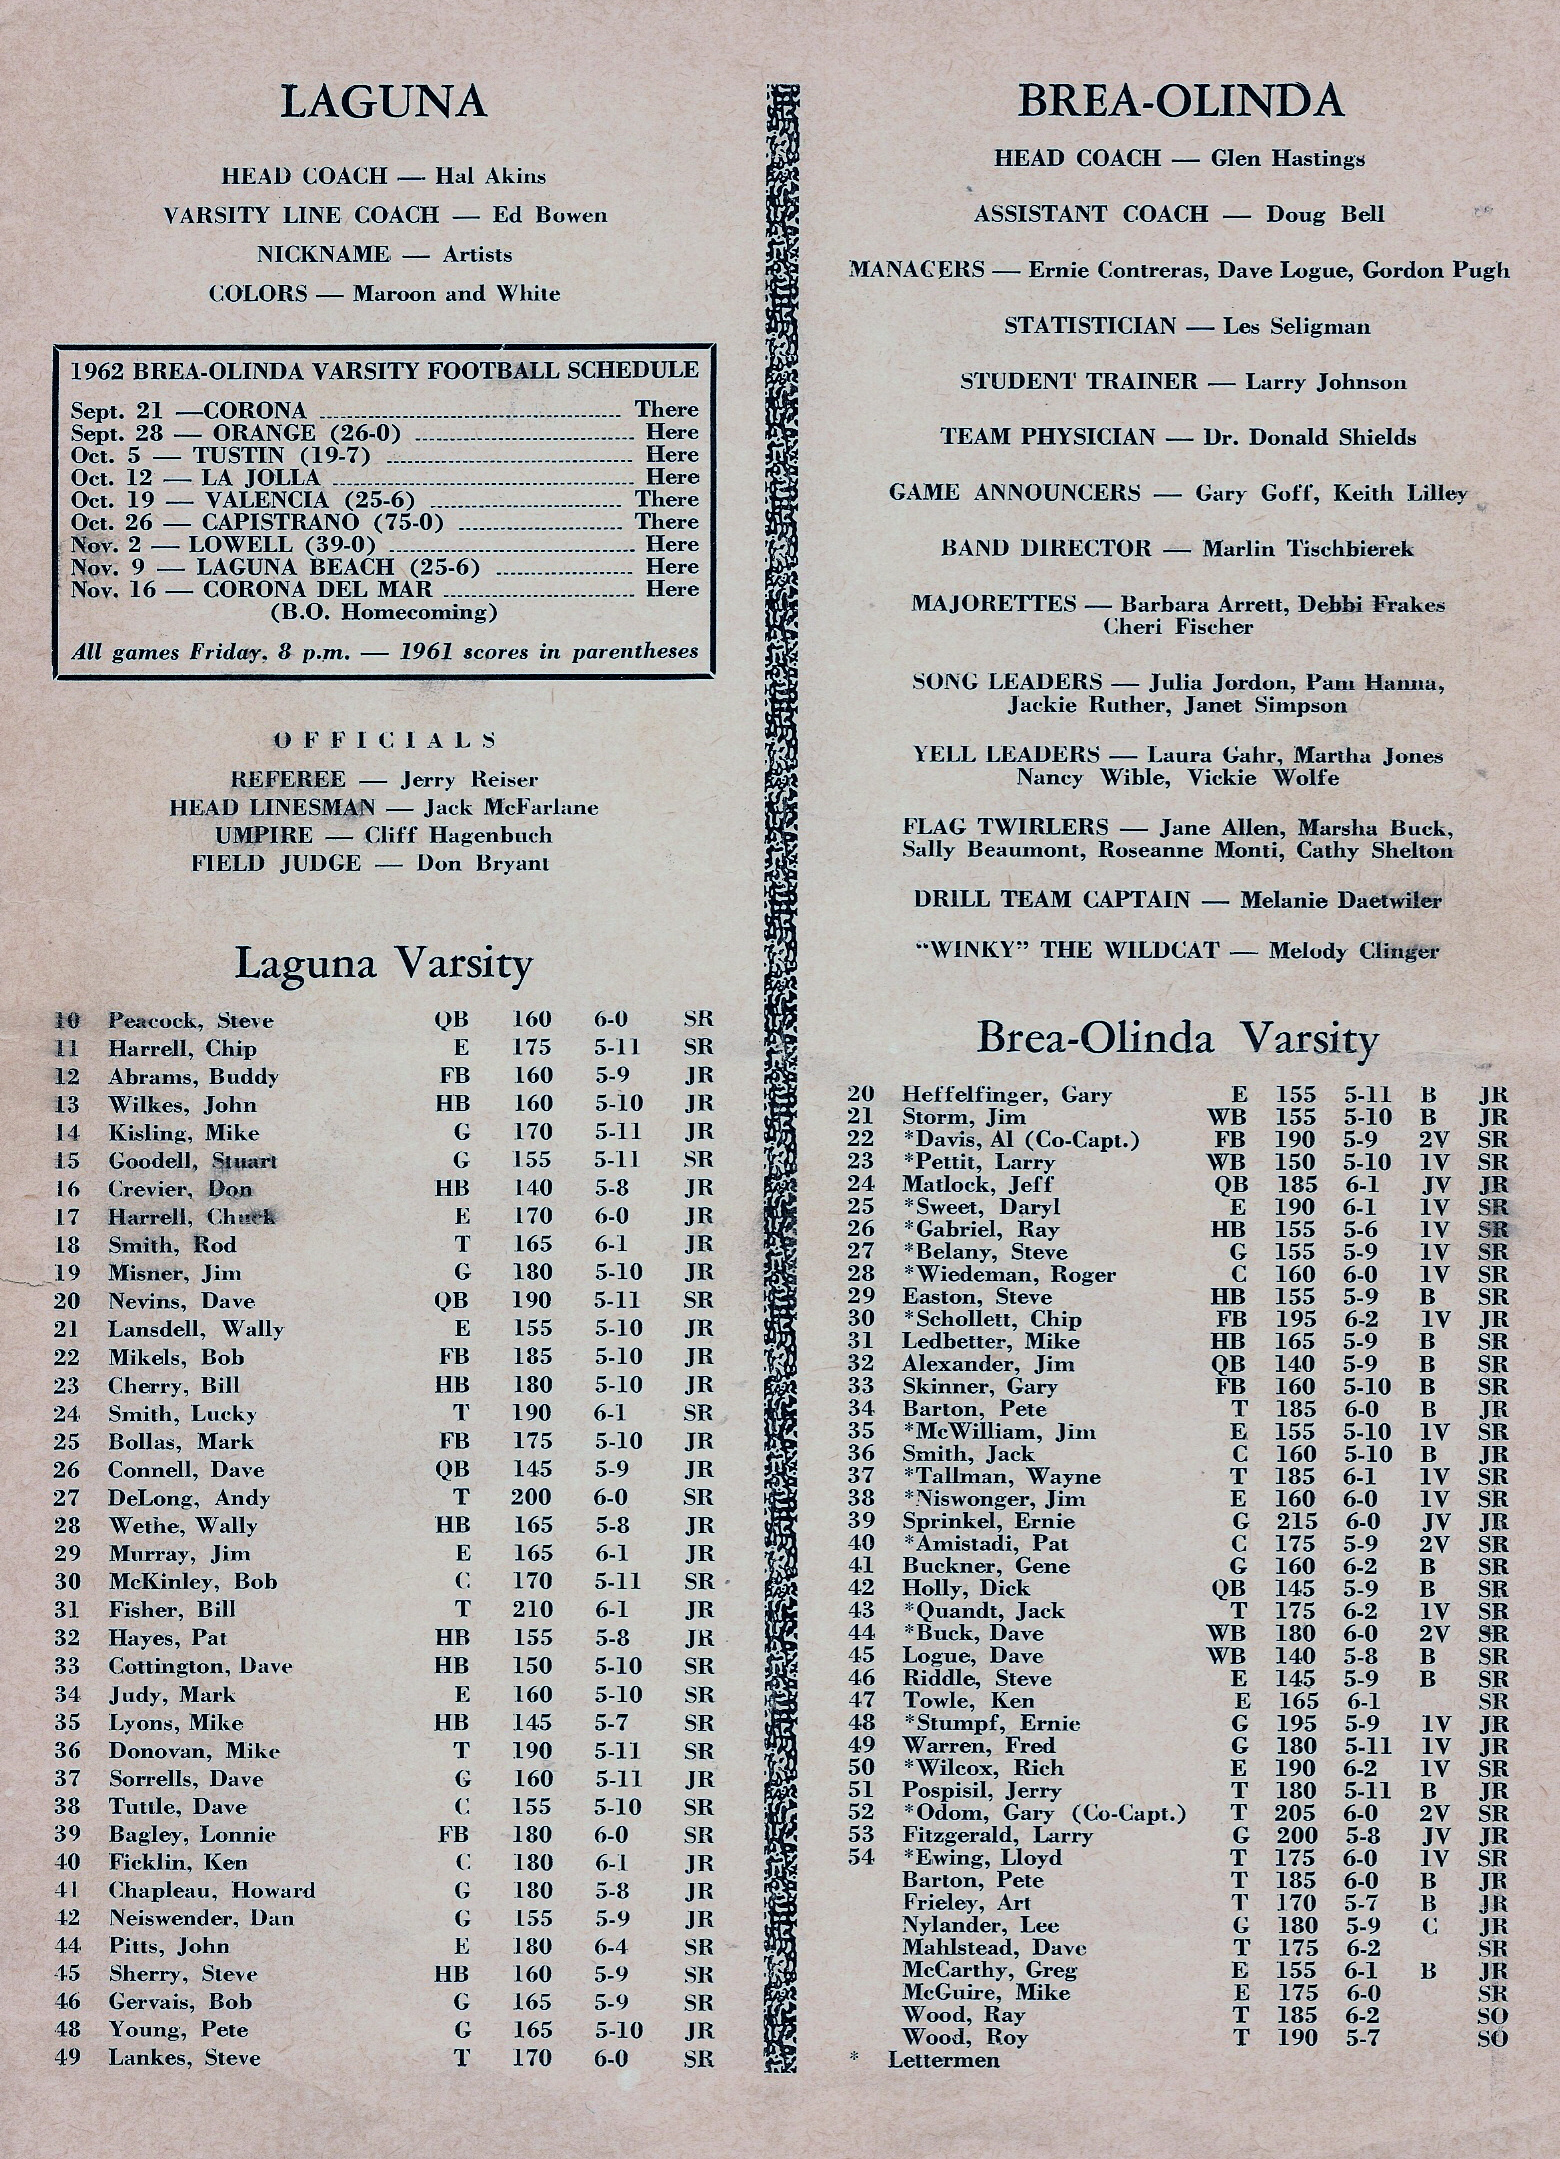 Brea-Olinda vs. Laguna Beach football rosters, 1962 (Photo Courtesy of Terry Sullivan)